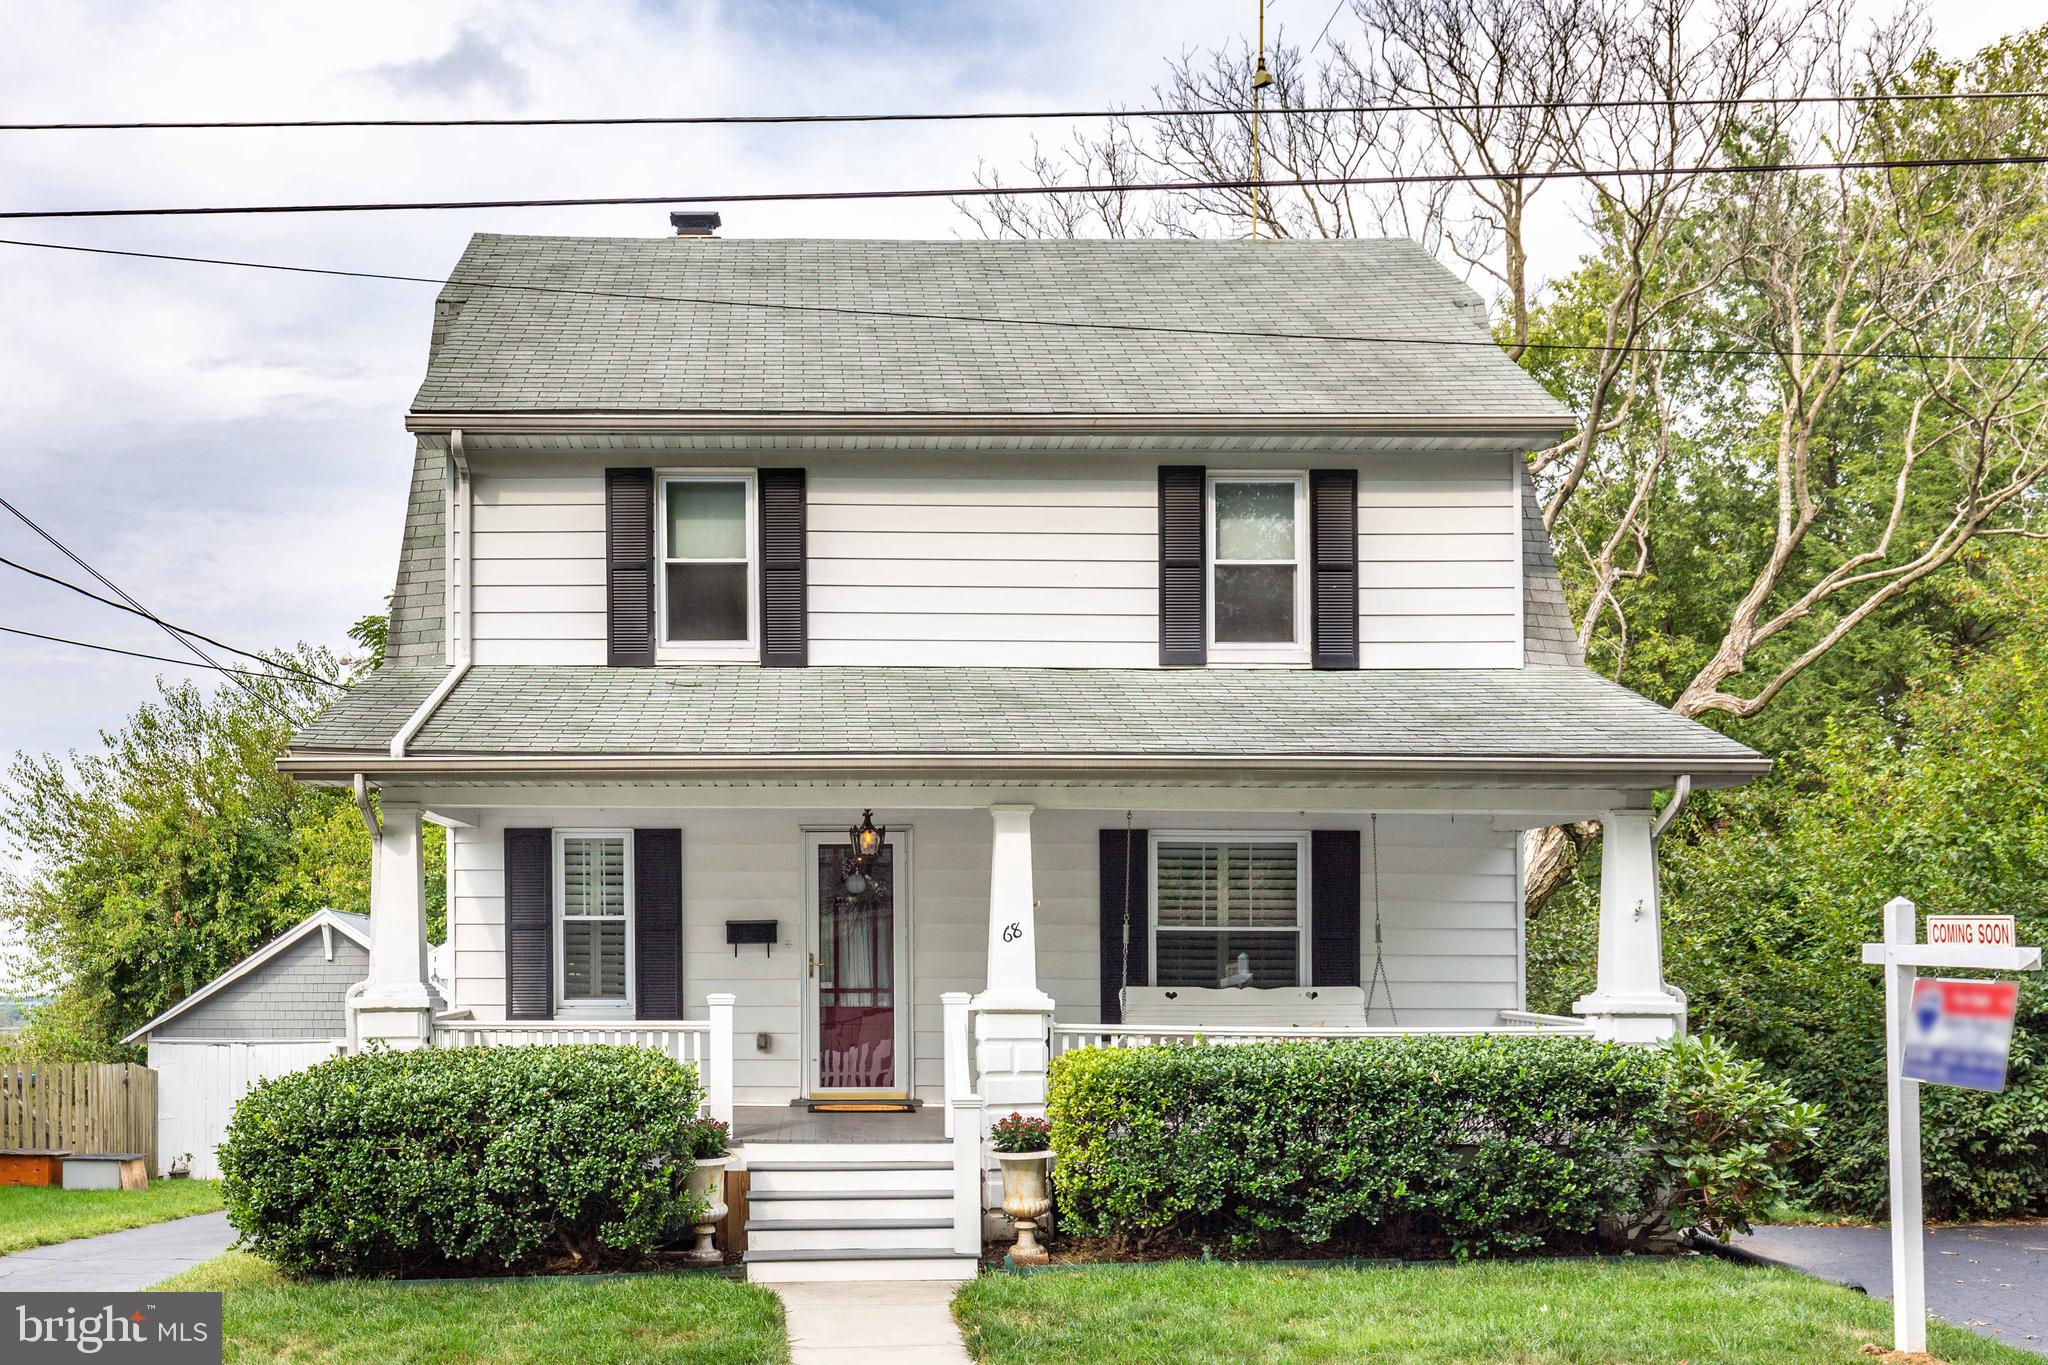 *Open House this Sunday Oct 27th 12-2*REDUCED!!!Immaculate 4BR 2Bath Colonial with 1 Car Garage*Outside features large front porch, bonus parking areas, rear patio with gas fire pit, Detached 1 gar garage recently painted,  newer windows, & fenced back yard*Inside boasts re-finished hard wood floors, wide custom moldings/arches, newly remodeled kitchen, newer baths, new electric panel, new paint, and more*Perfect blend of unique character with modern day comforts*Tucked away in a convenient section of town close to all amenities*Great price!!!*